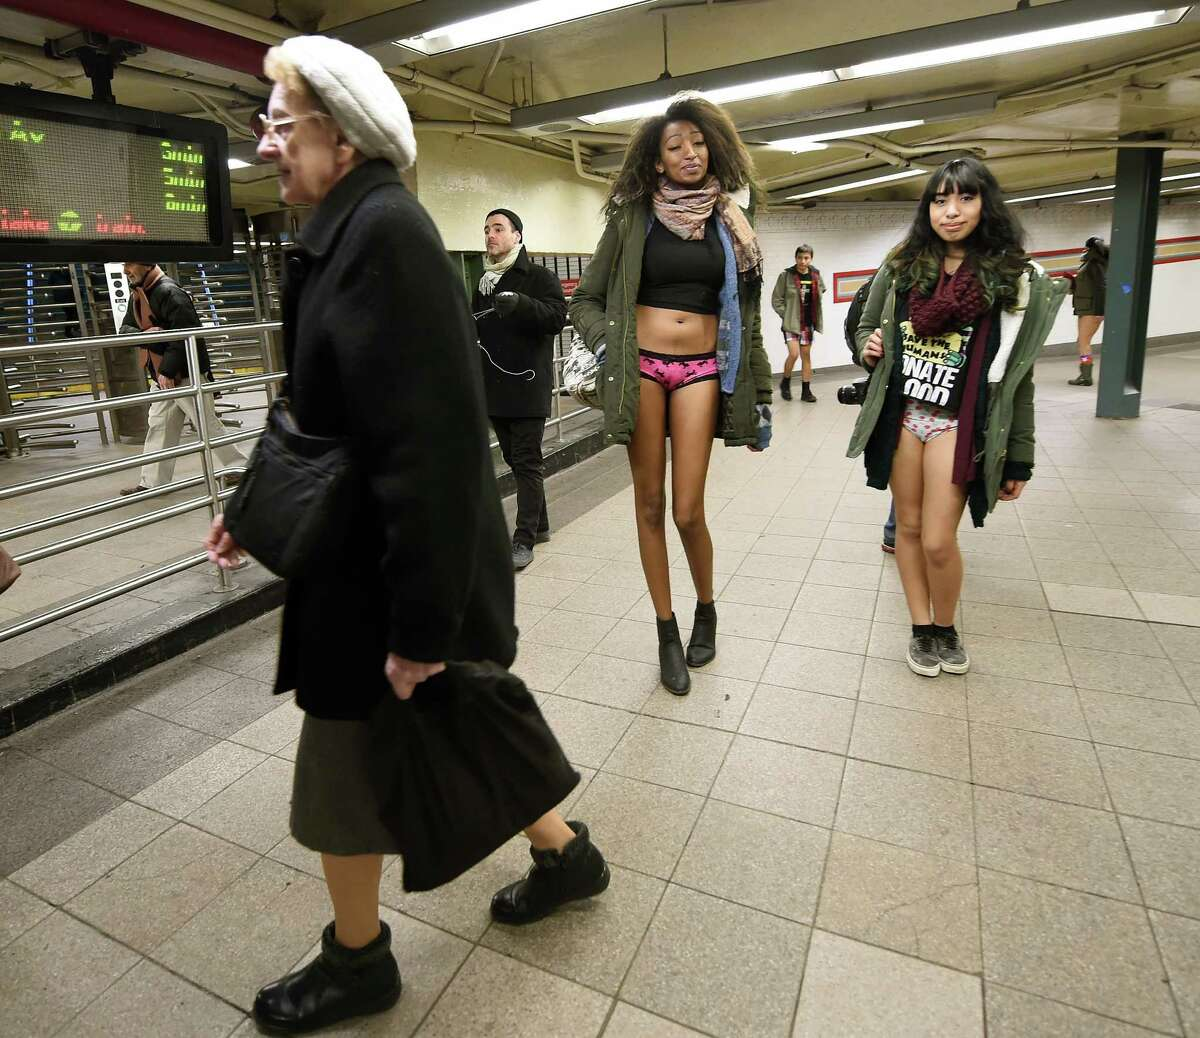 Some participants in their underwear take part in the No Pants Subway Ride in New York subway on January 11, 2015 in New York. The No Pants Subway Ride is an annual which was started in 2002 by Improv Everywhere in New York, the goal is for riders to get on the subway train dressed in normal winter clothes without pants and keep a straight face. AFP PHOTO / TIMOTHY A. CLARY